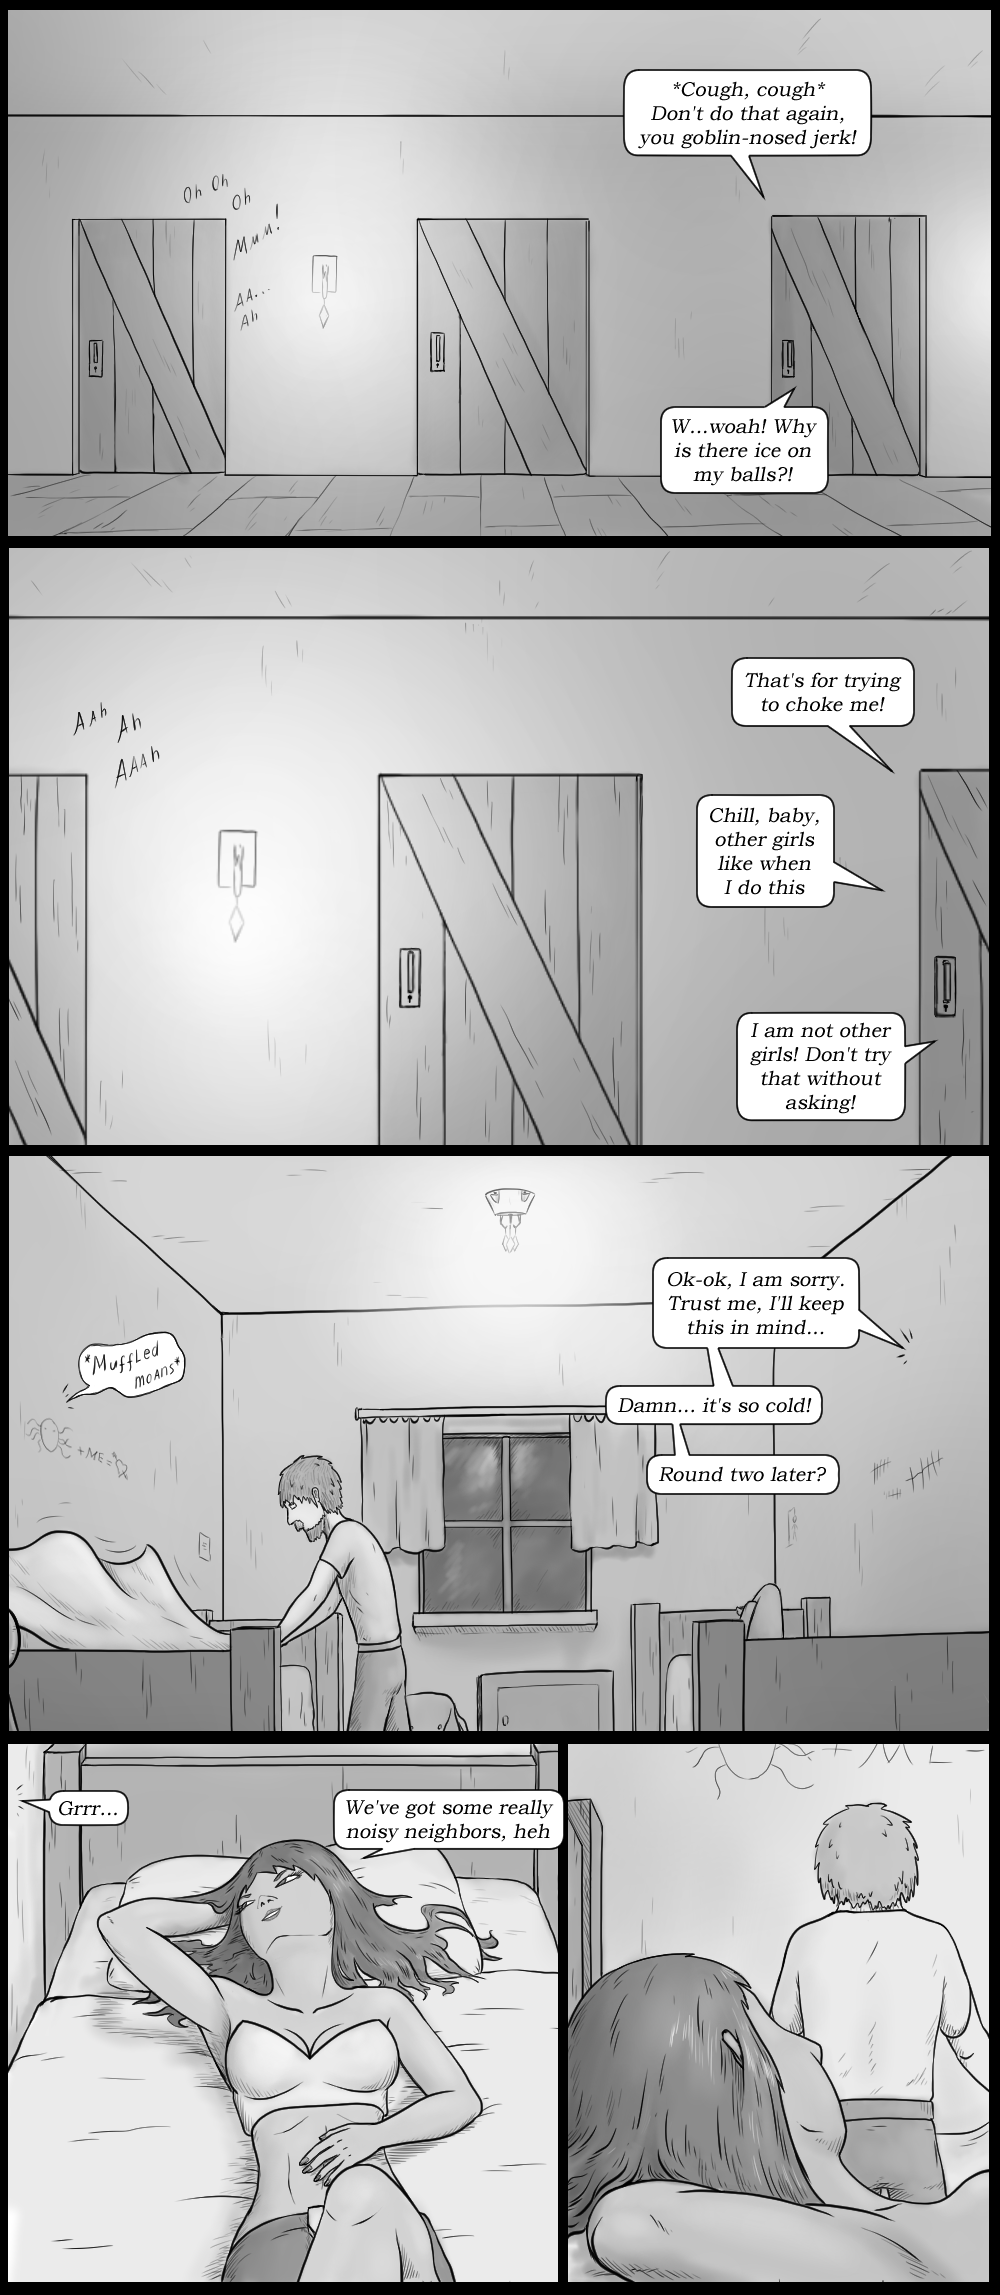 Page 100 - Noisy neighbors